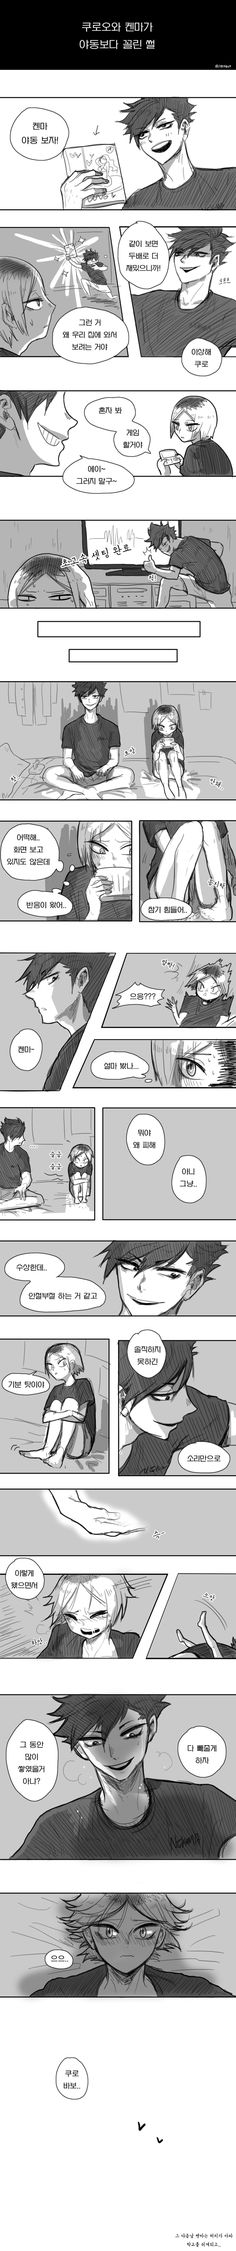 [쿠로켄/15] dvd Kuroken, Kenma, Cute Comics, Haikyuu, Sheet Music, Music Sheets, Cute Cartoon